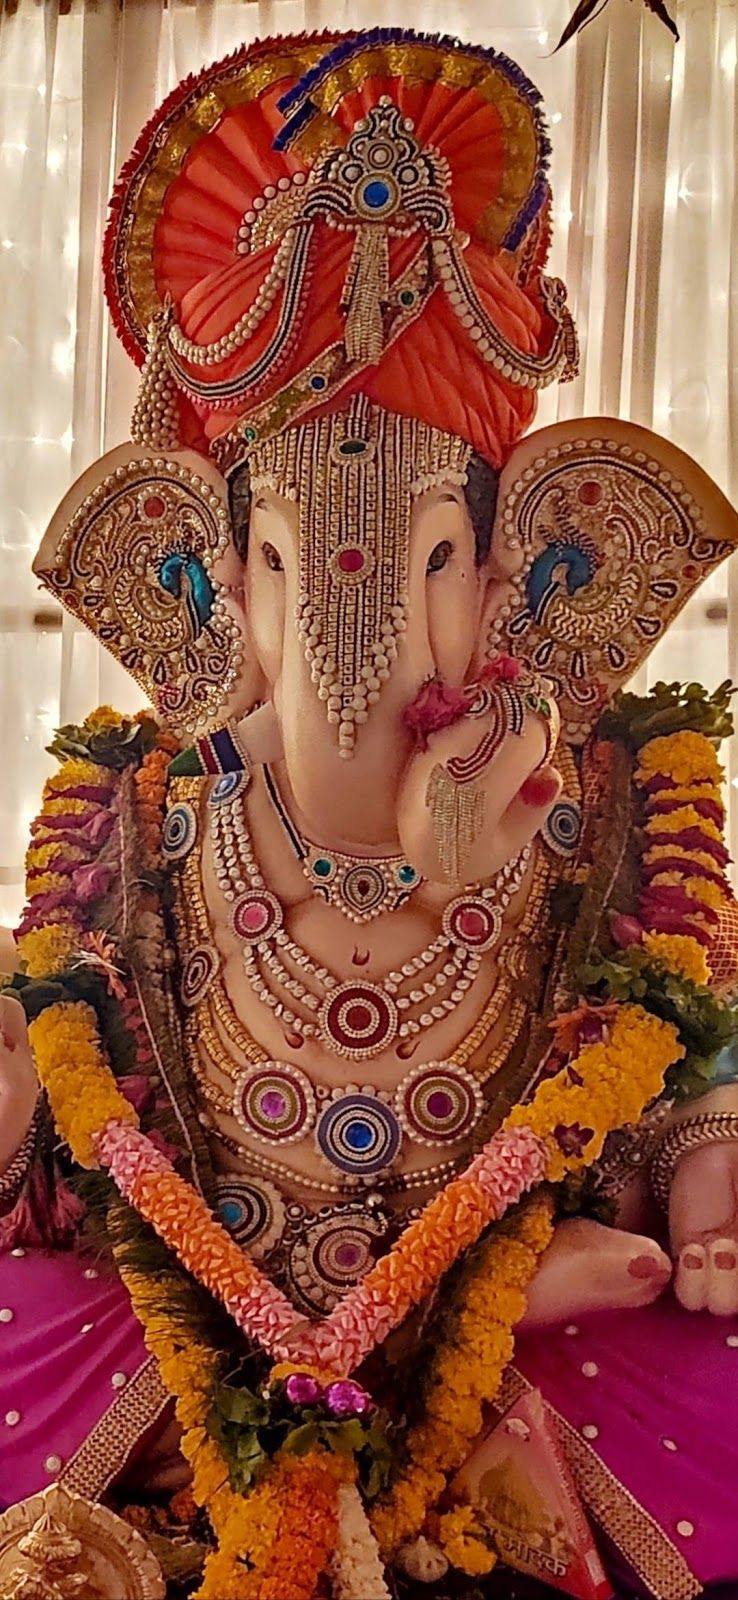 Lord Ganesha Ultra Hd Wallpapers For Mobile And Pc Background God Ganesha Full Hd Wallpapers Lord Ganesha Ganesha Ganesh Chaturthi Images High quality ultra hd lord ganesha hd